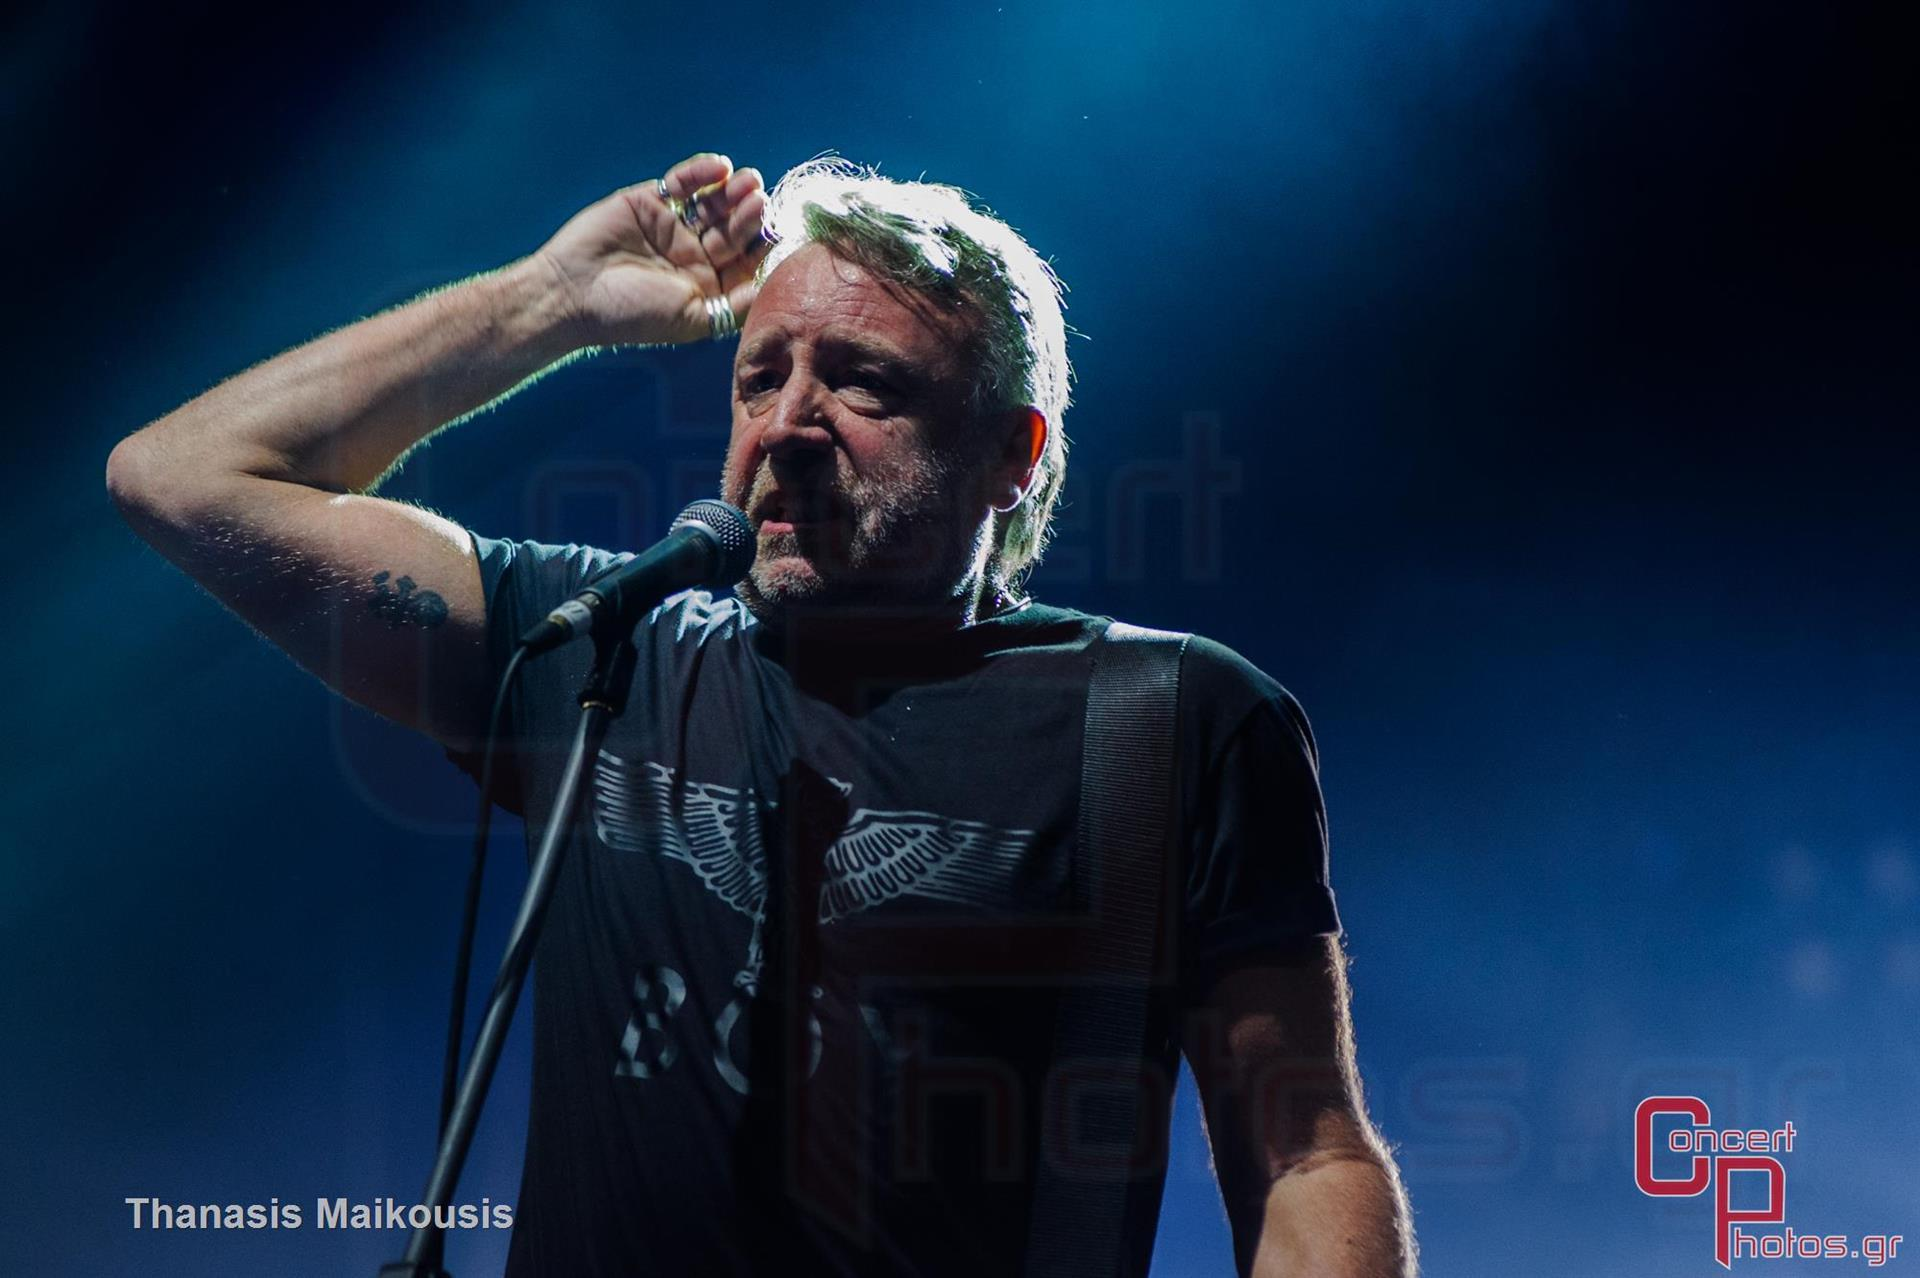 Peter Hook & The Light -Peter Hook & The Light Ejekt 2013 photographer: Thanasis Maikousis - concertphotos_-9380